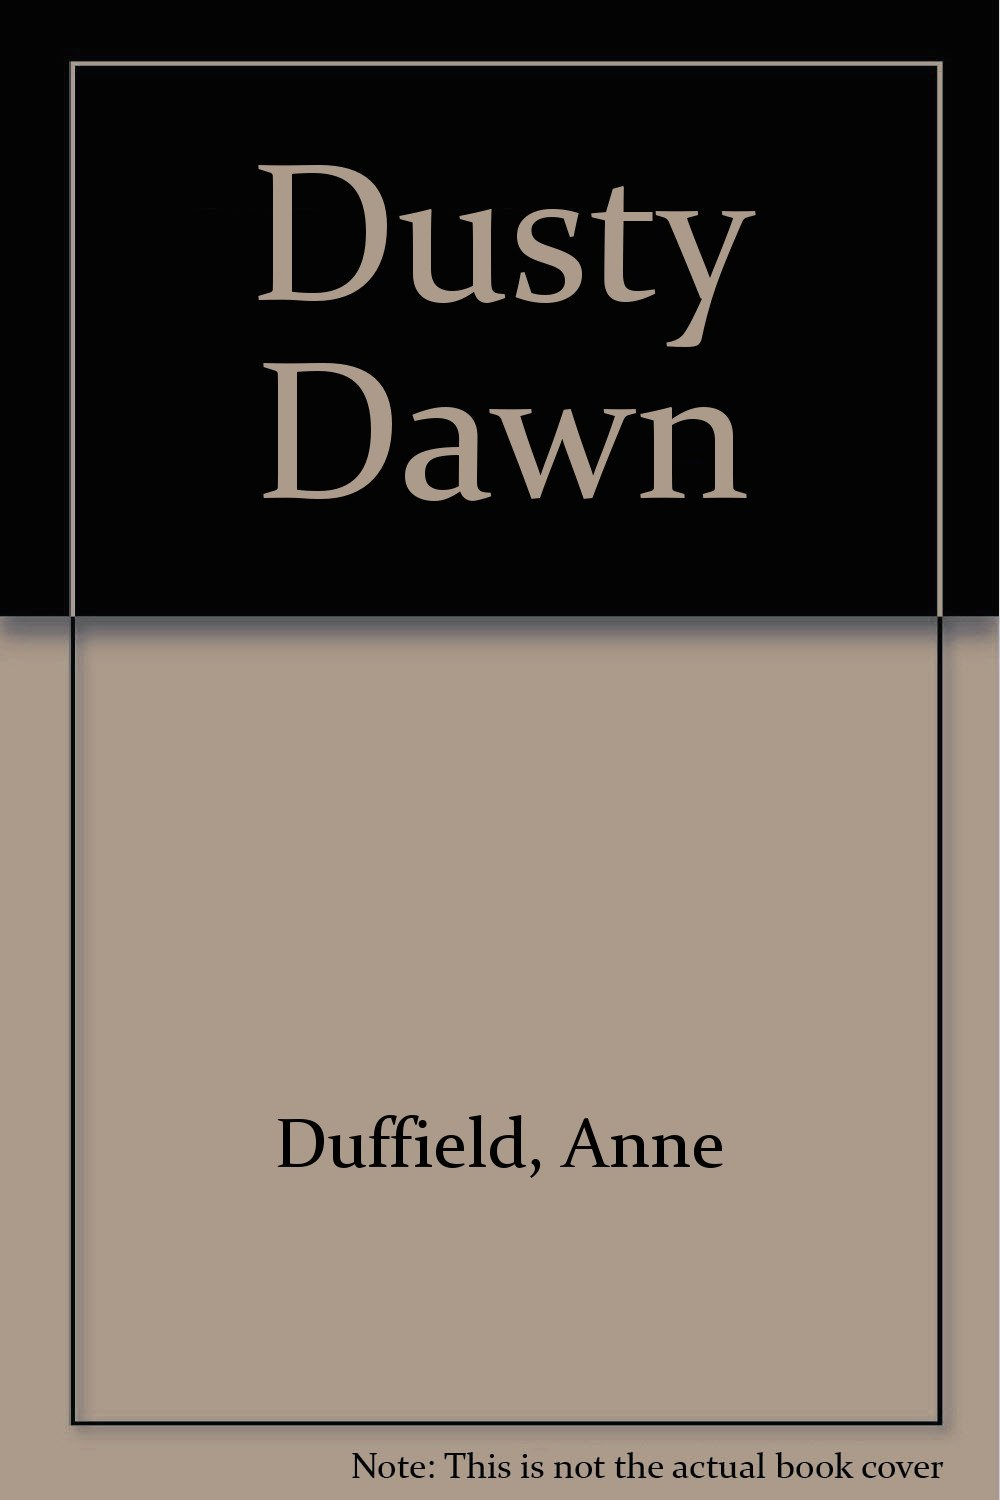 Dusty Dawn, Duffield, Anne